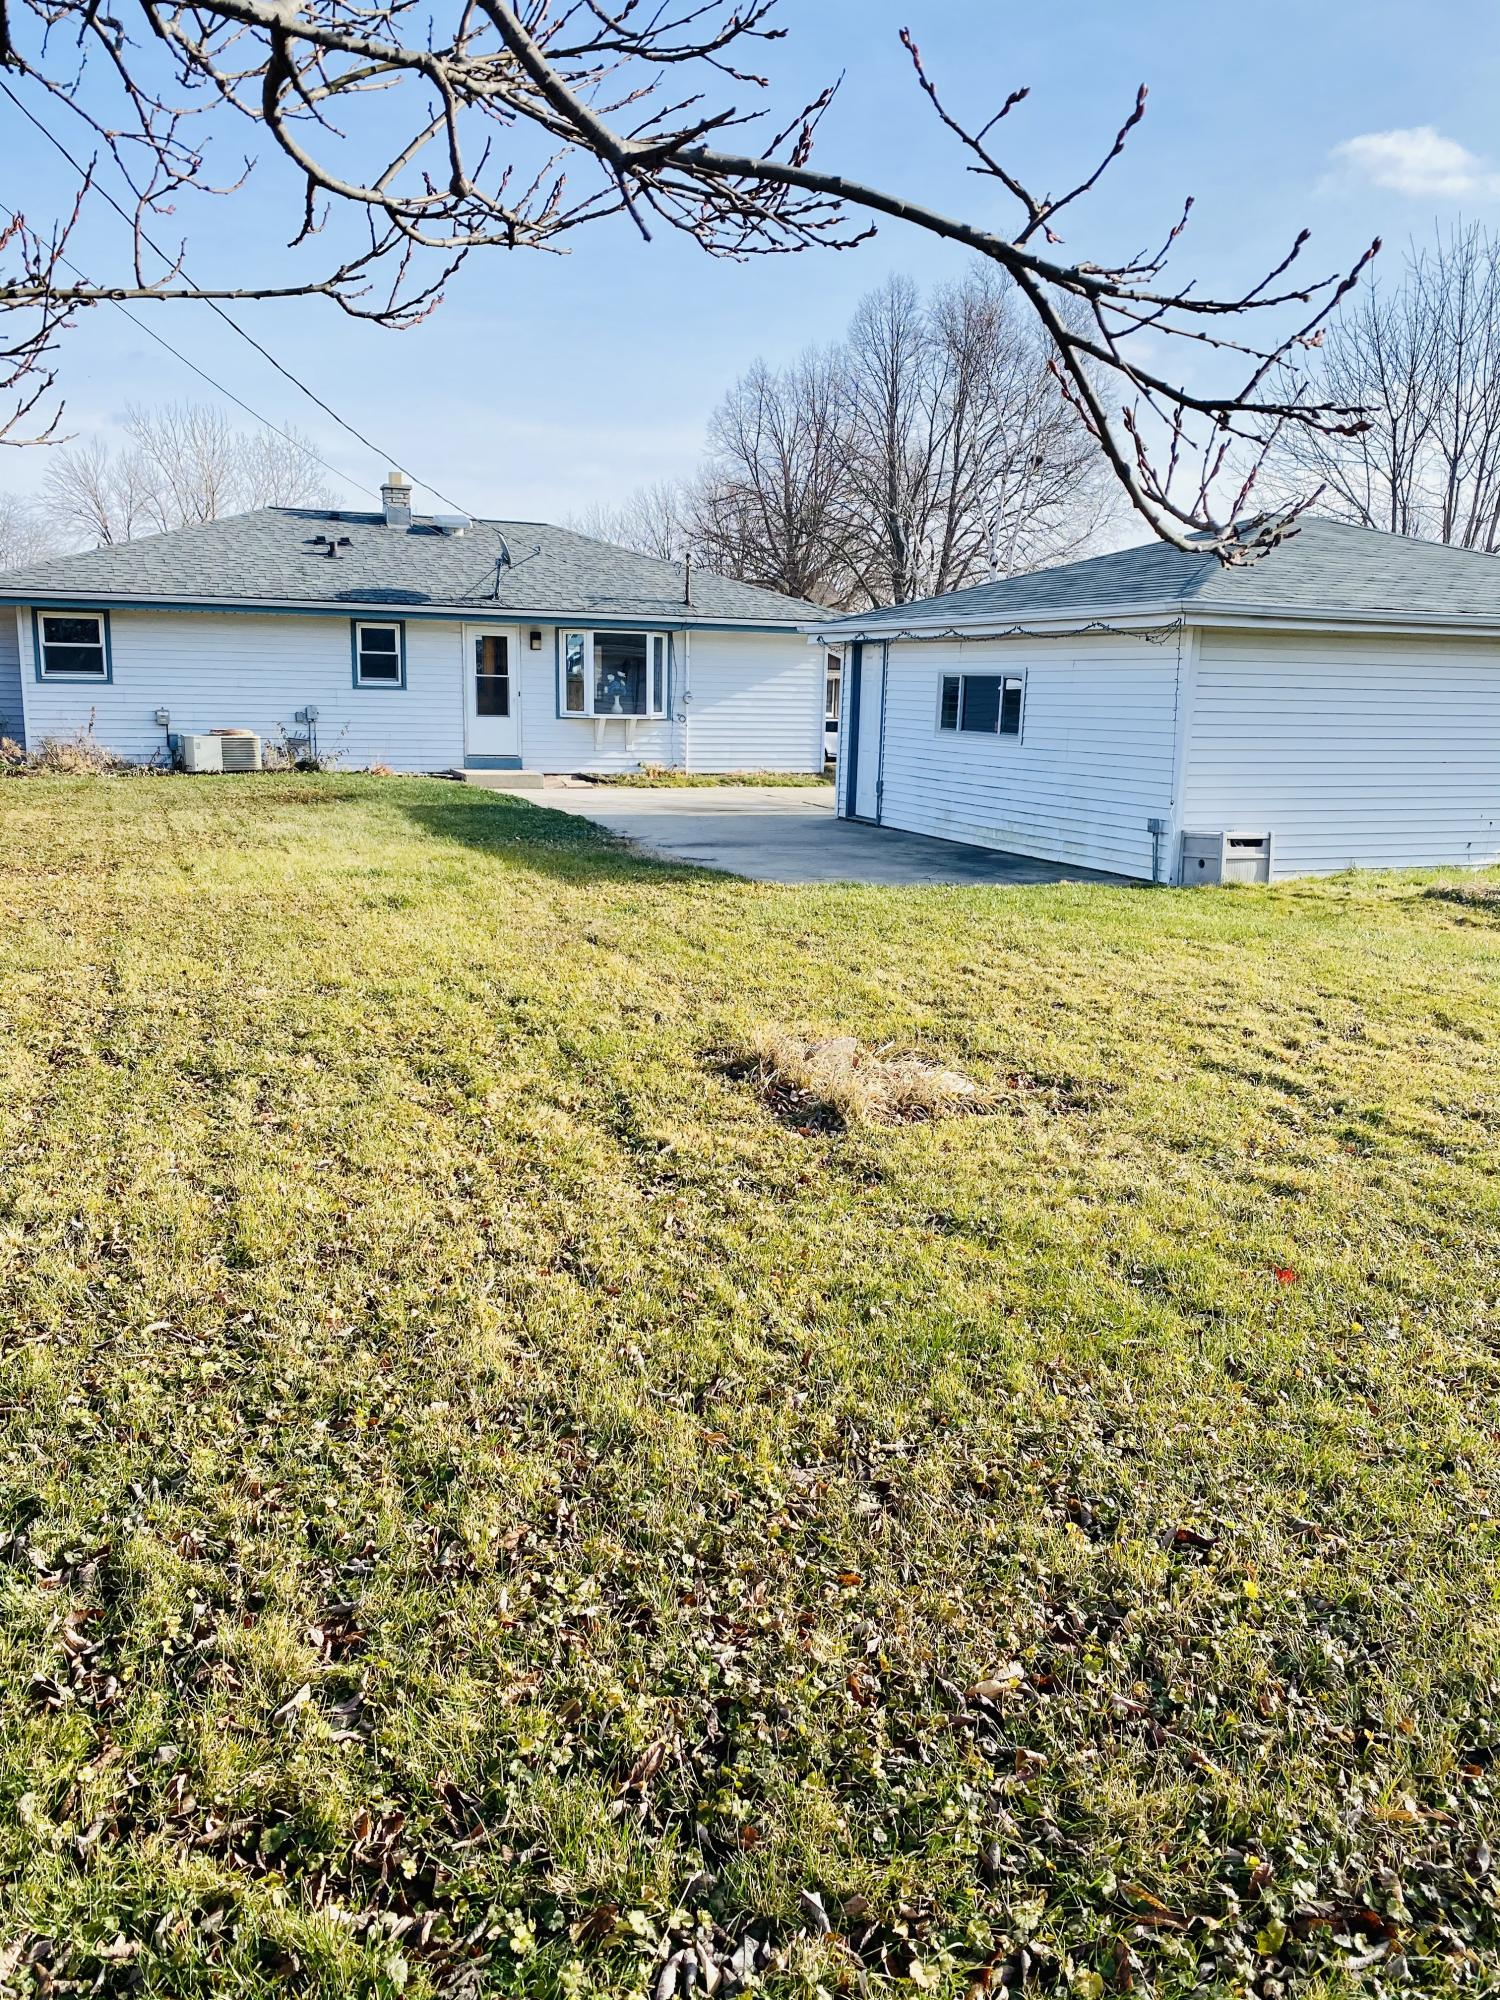 6161 Indiana Ave, Cudahy, Wisconsin 53110, 3 Bedrooms Bedrooms, 5 Rooms Rooms,2 BathroomsBathrooms,Single-family,For Sale,Indiana Ave,1722339